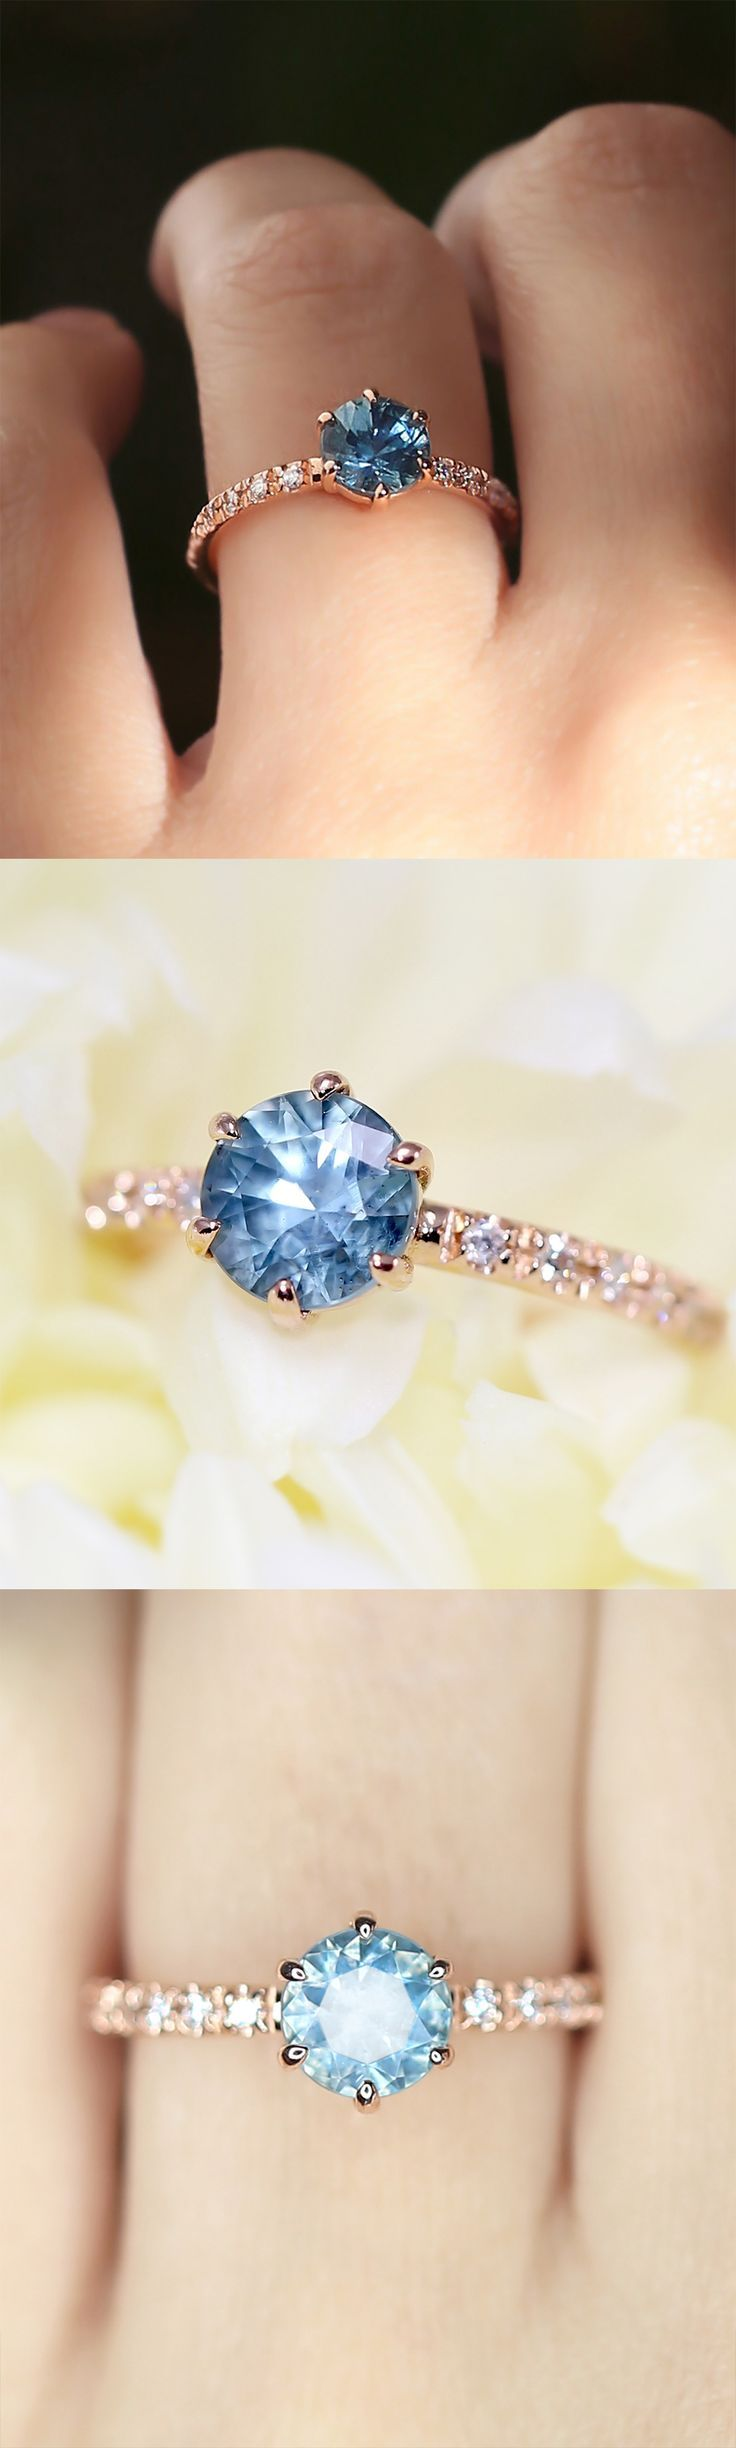 Rose Gold Sky Blue Montana Sapphire Collet Ring [SOLD]